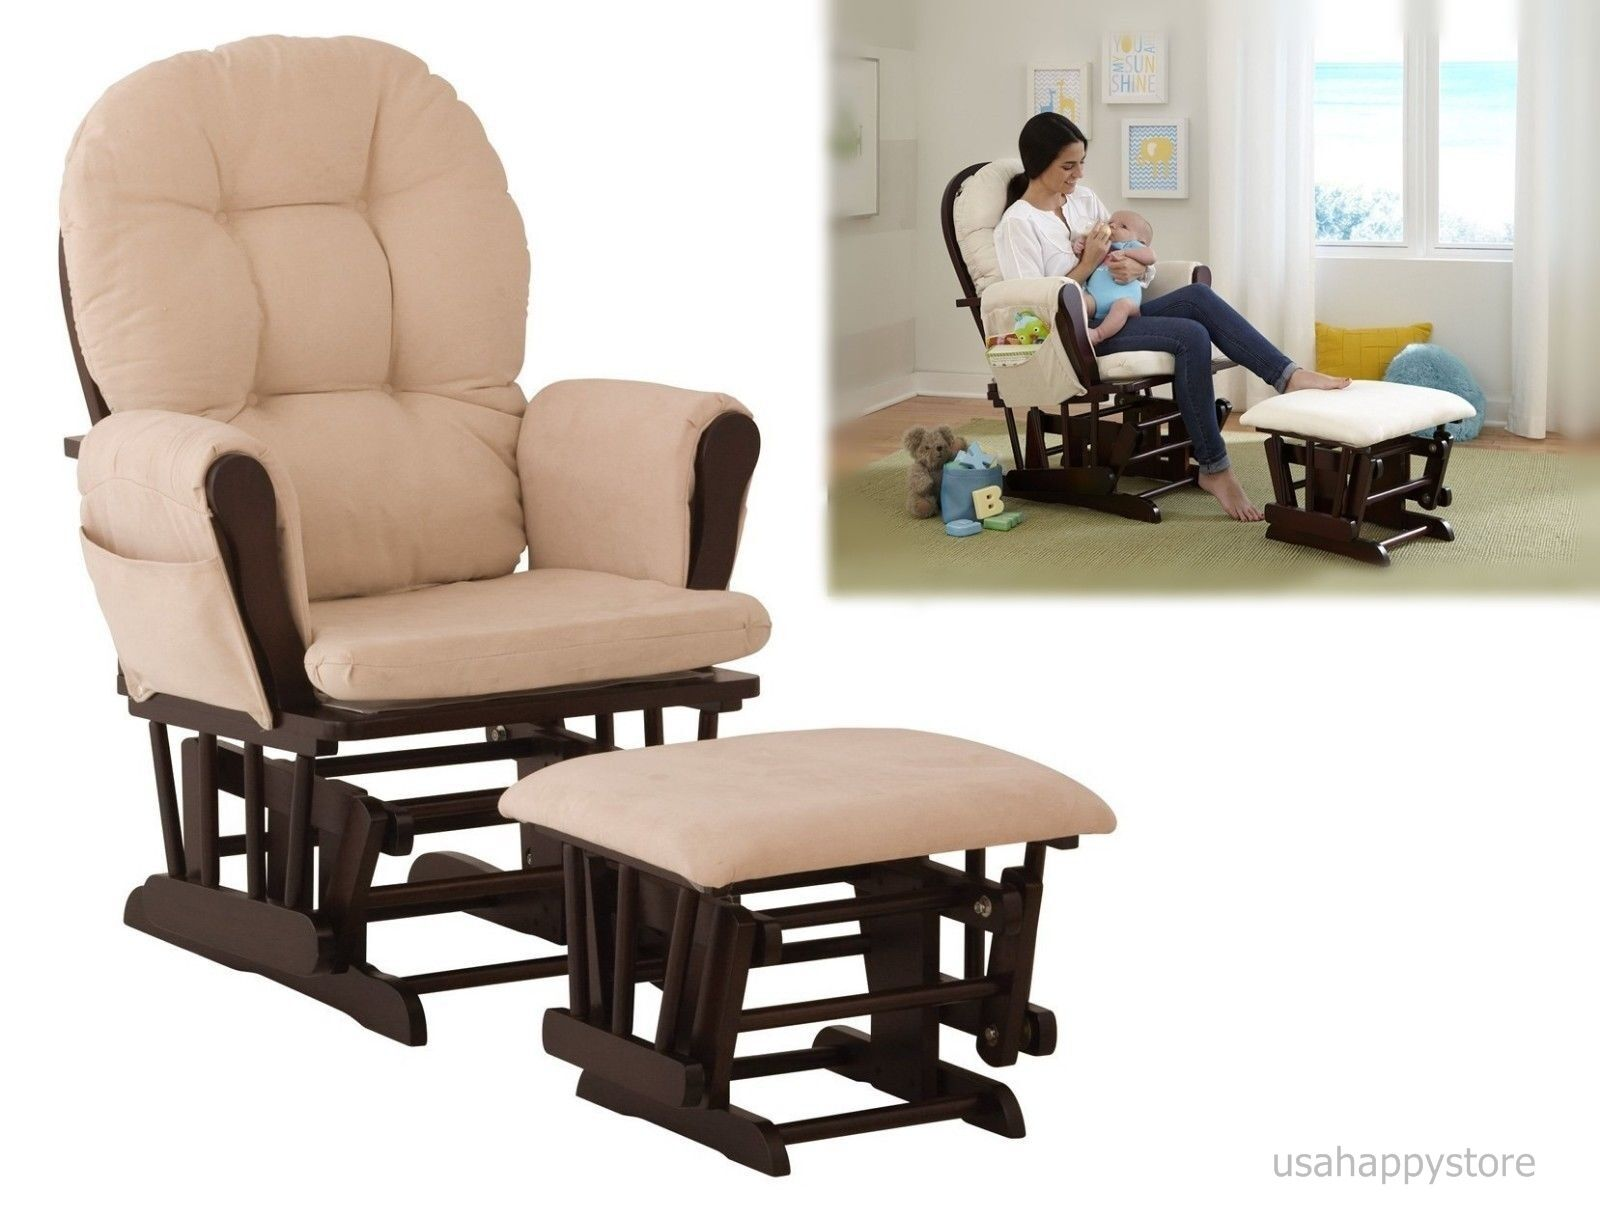 Glider Rocker Rocking Chair With Ottoman Set Baby Relax